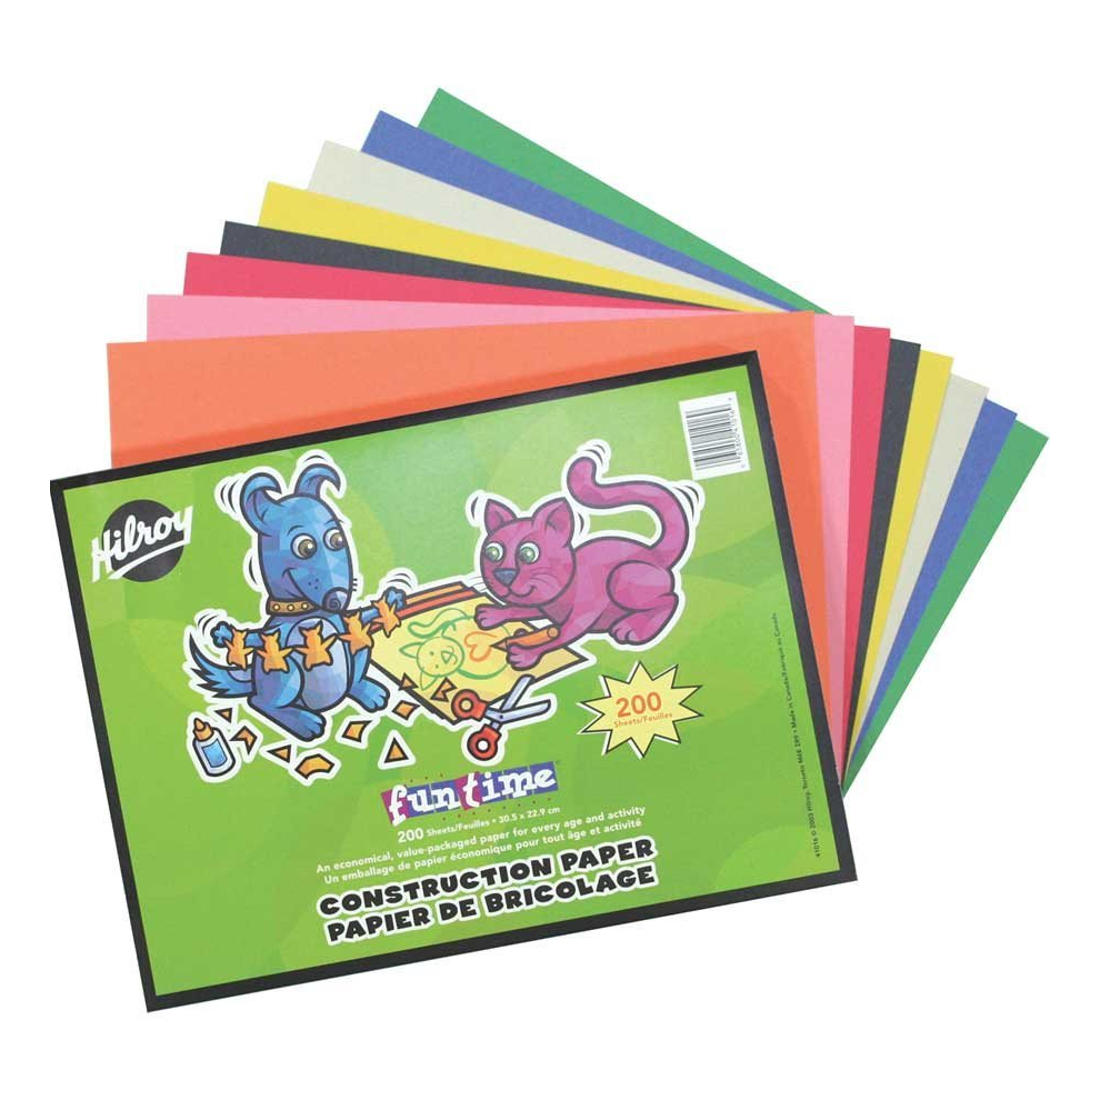 Hilroy Fun Time Construction Paper, 12 x 9, 8 Assorted Colors, 200 Sheets|Pack